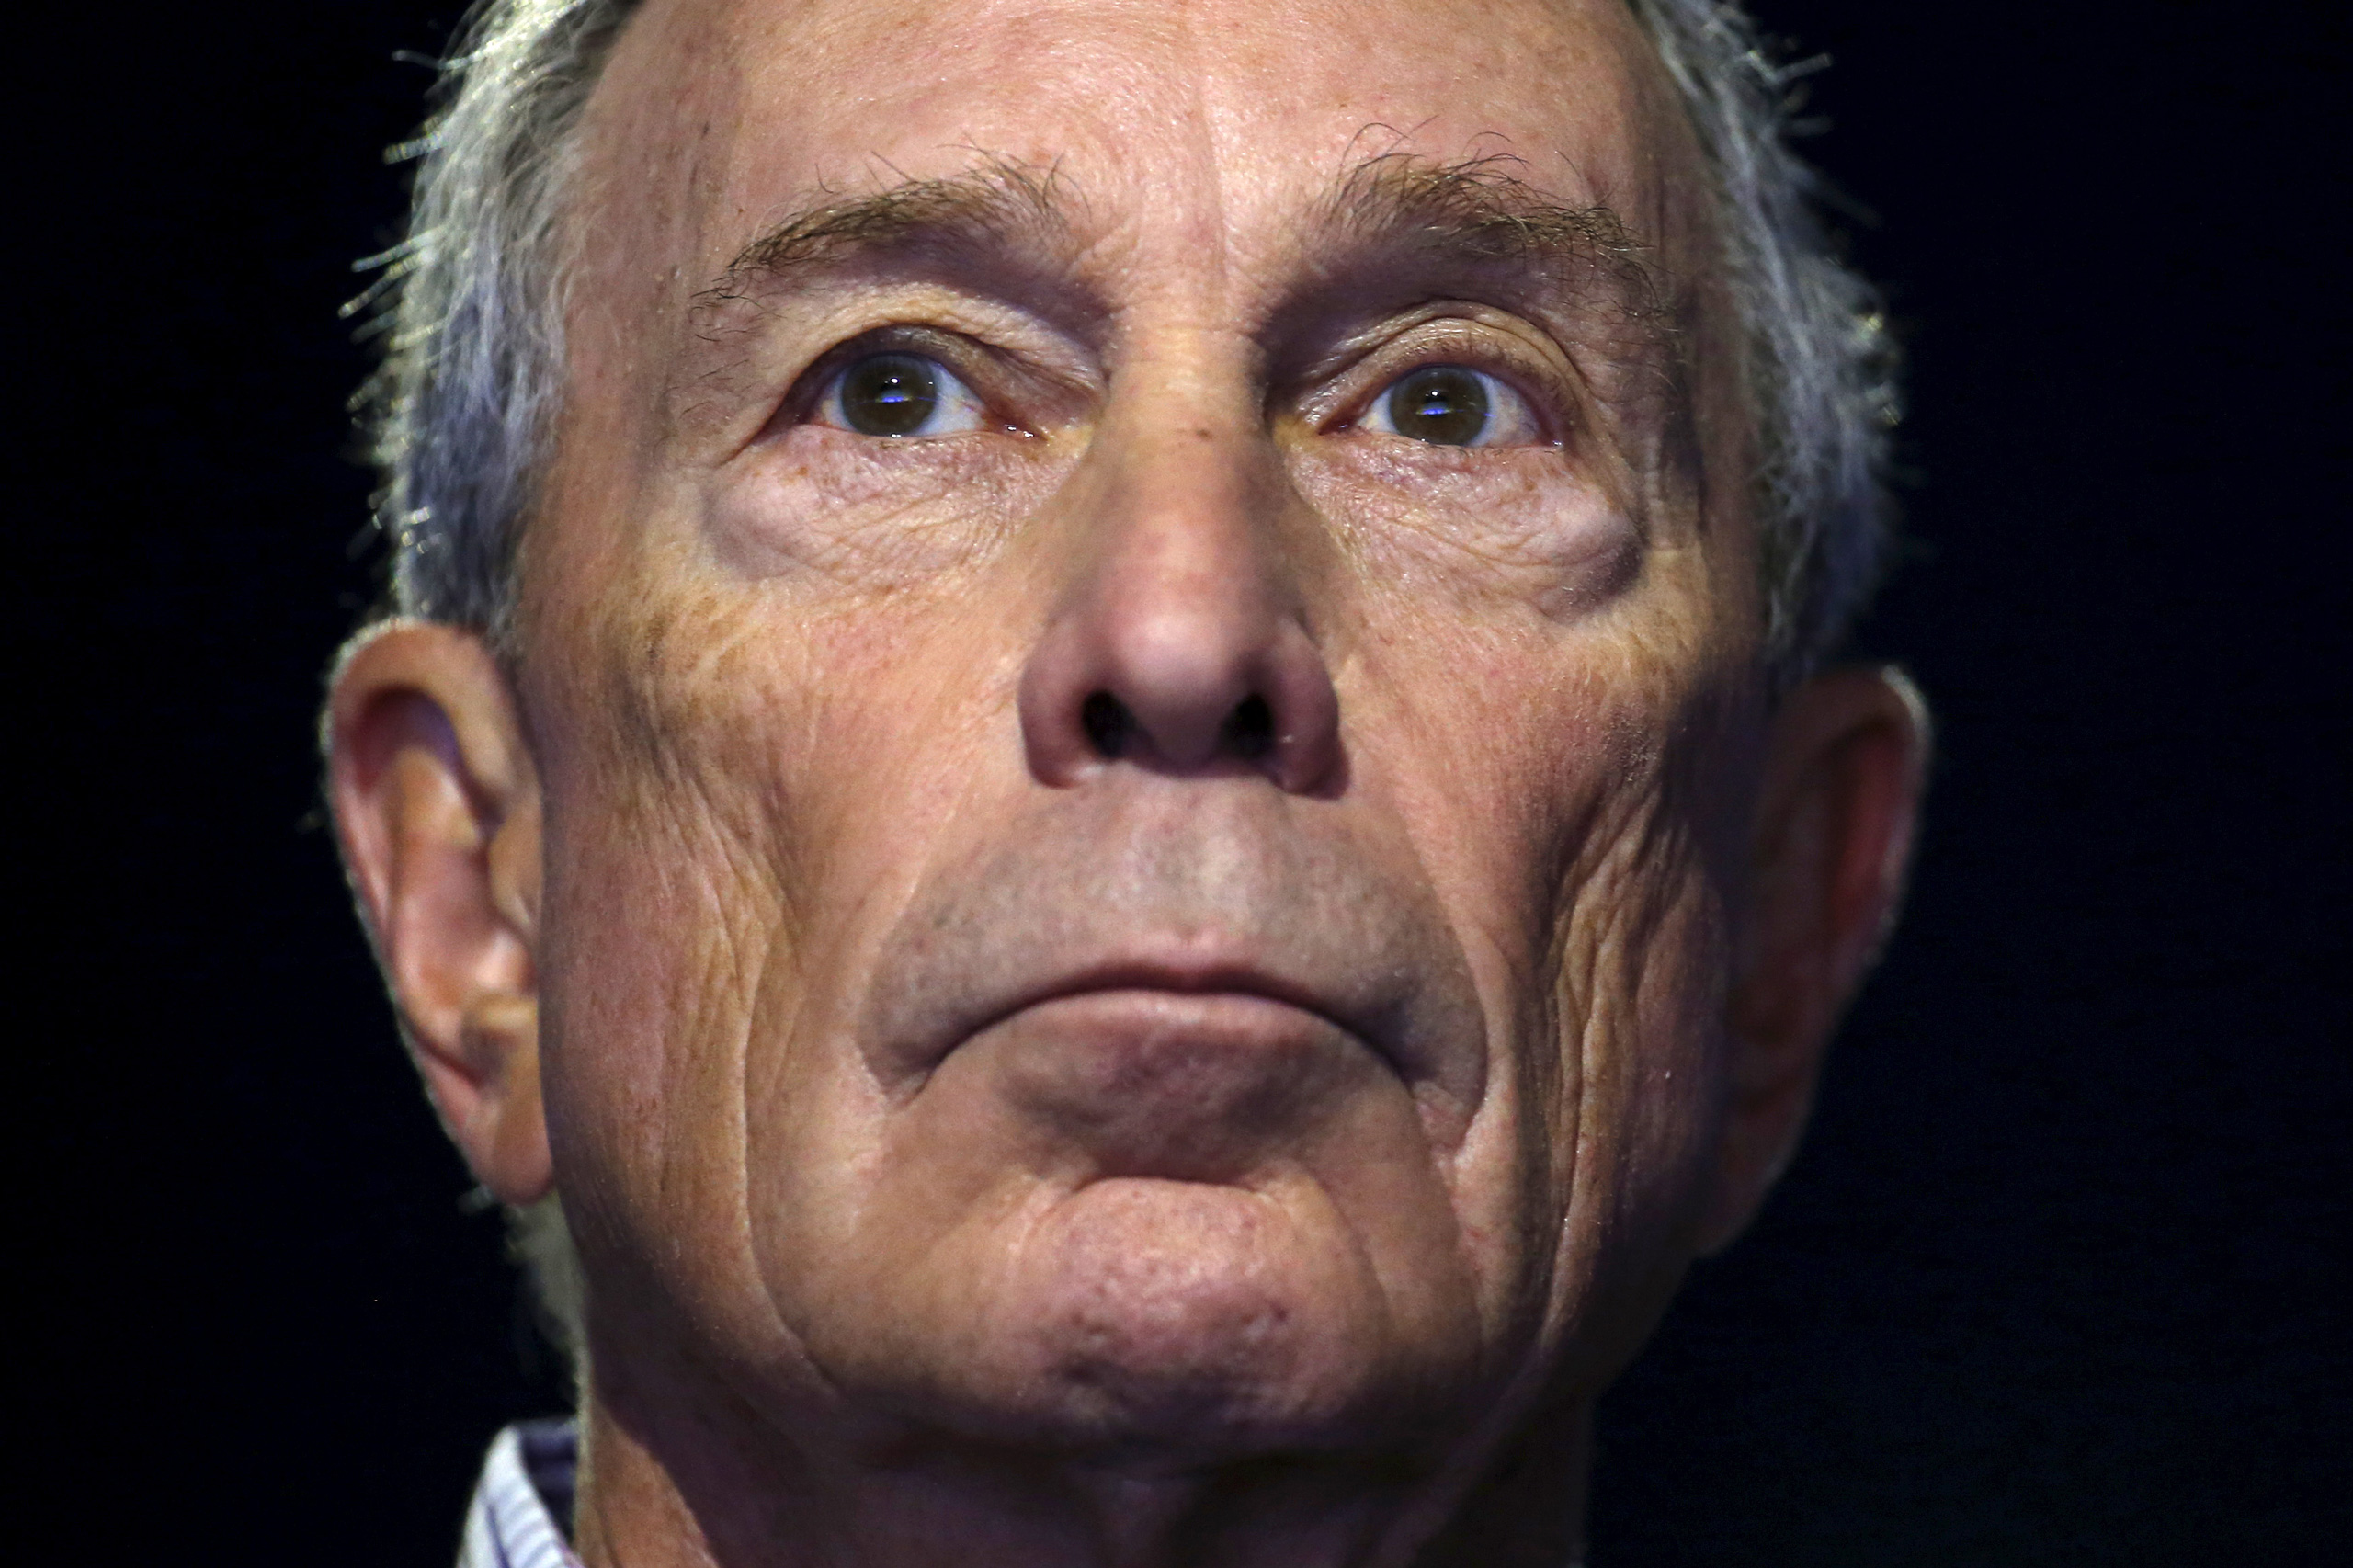 Former New York City Mayor Michael Bloomberg attends a meeting during the World Climate Change Conference 2015 (COP21) at Le Bourget, France, on Dec. 5, 2015